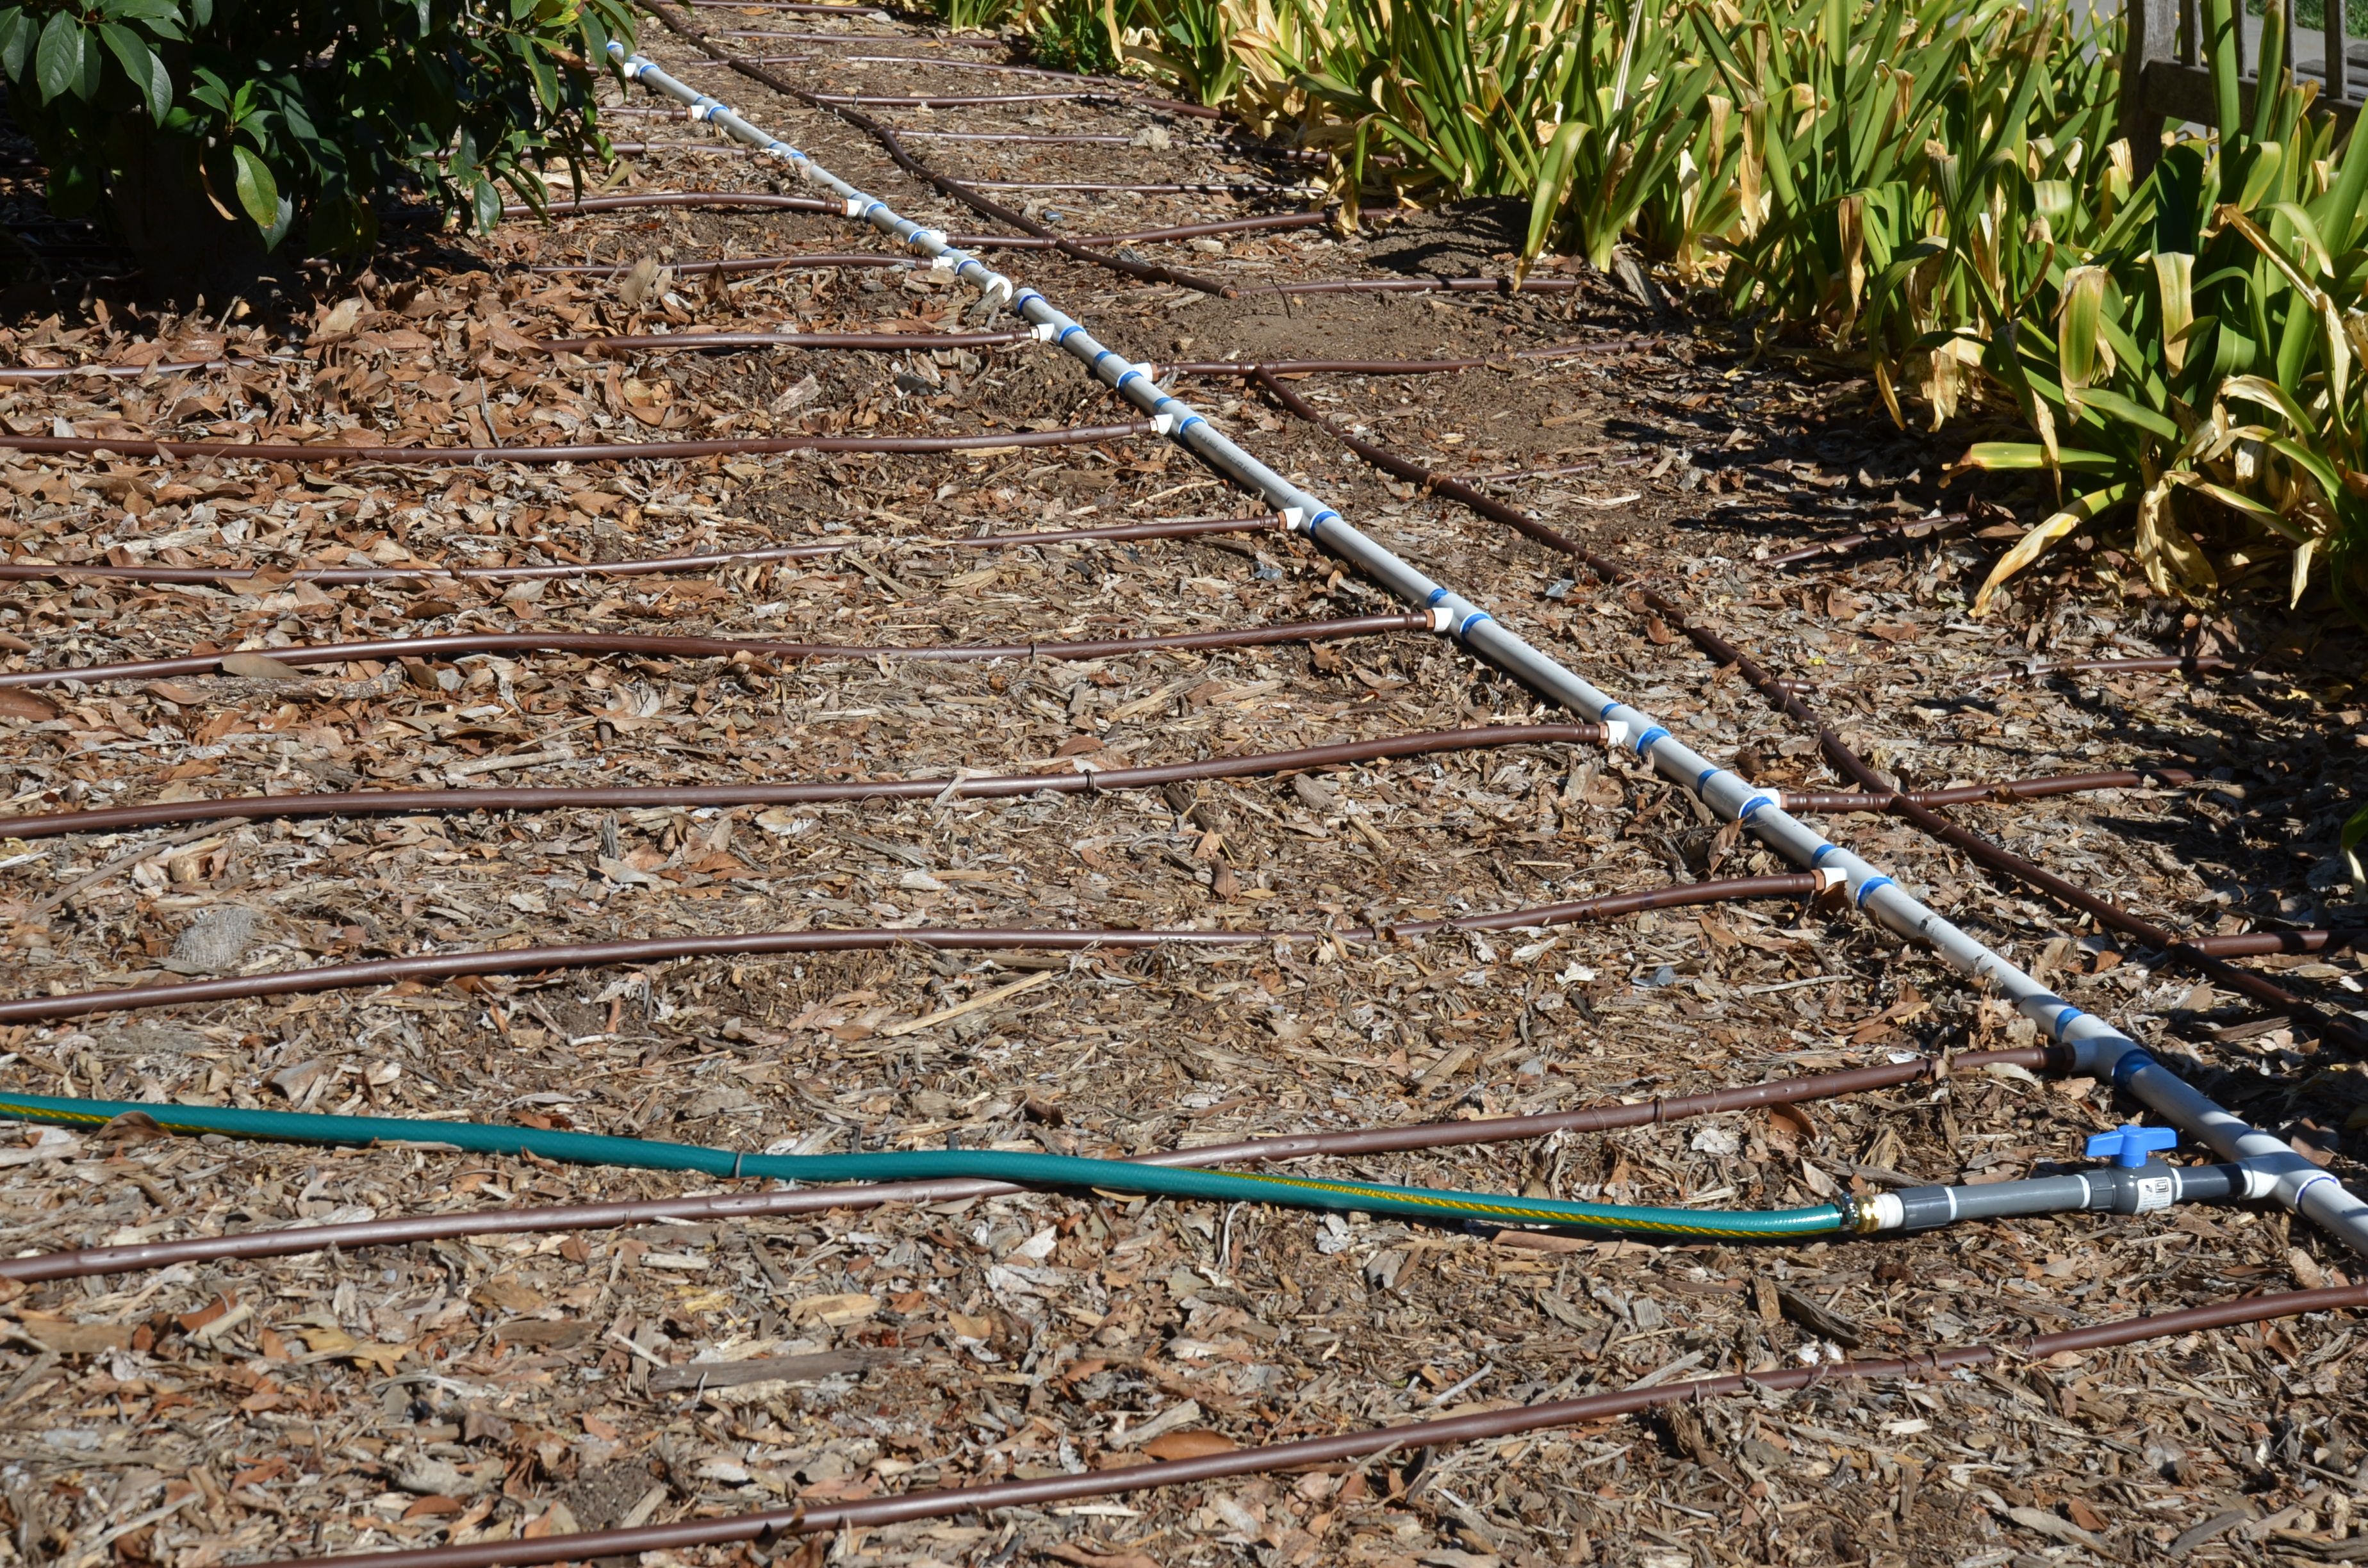 Buy blue dune lyme grass in nw arkansas - Irrigation System